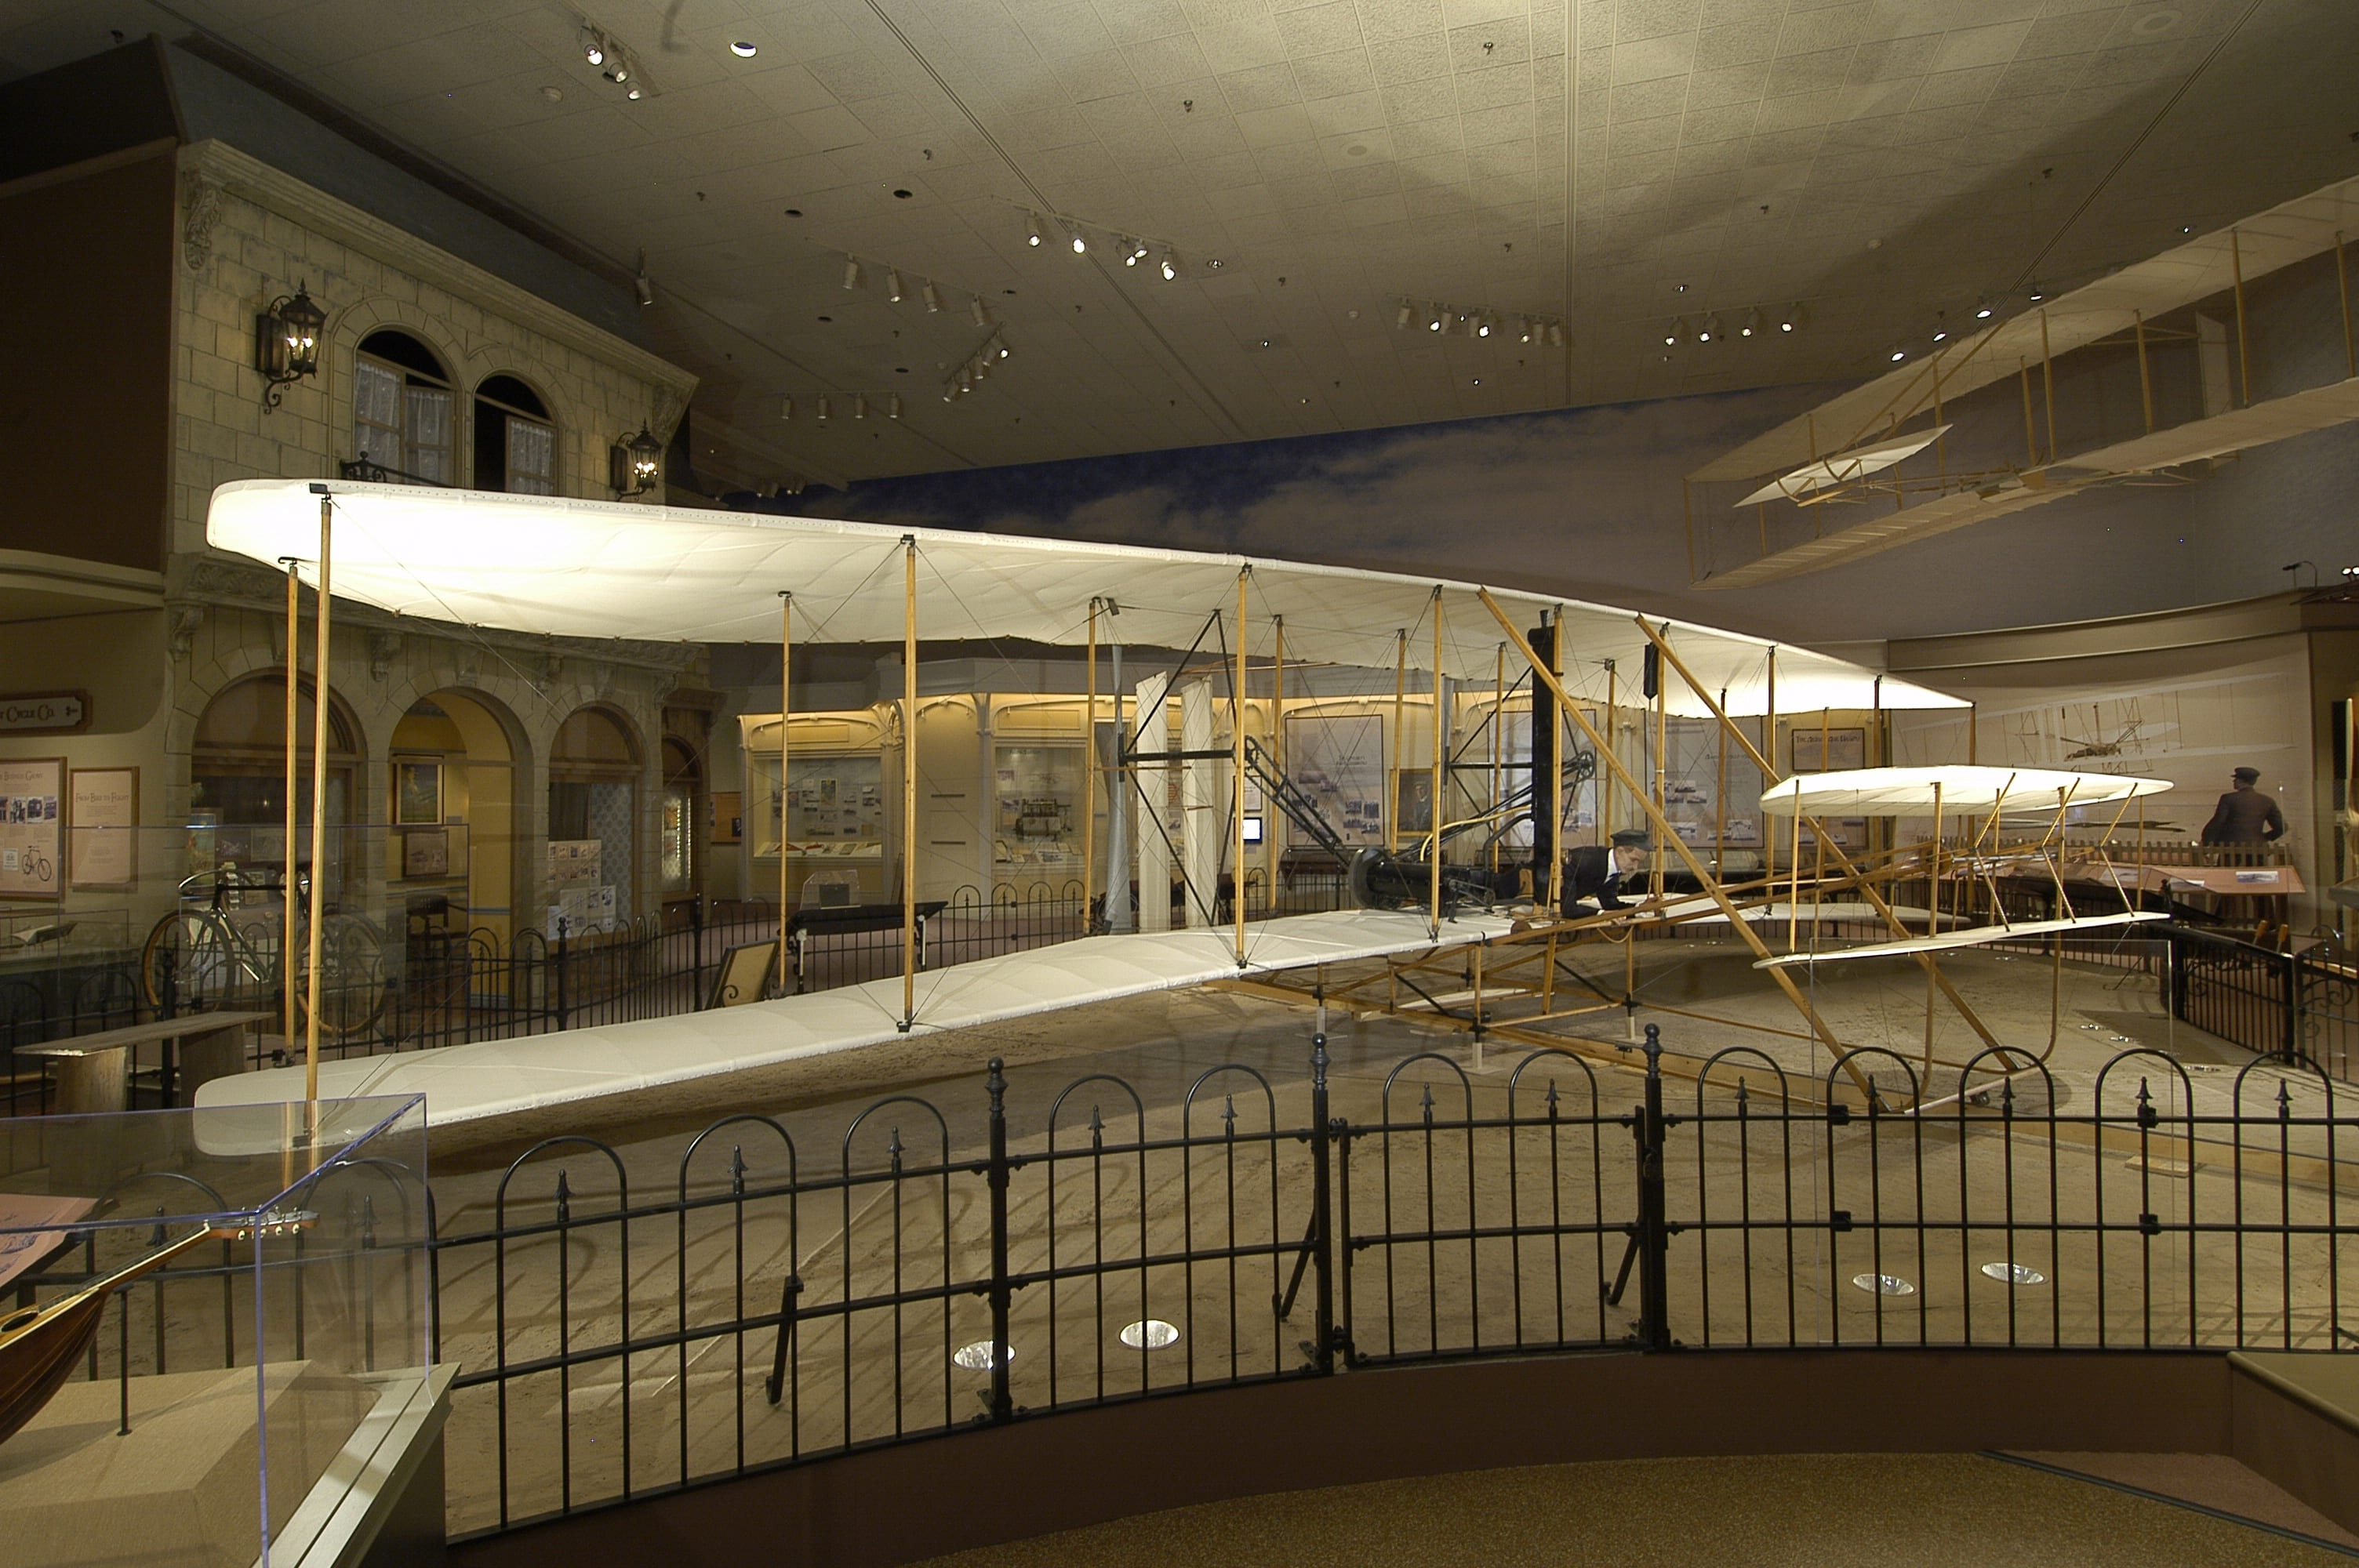 America's Top 10 aviation attractions